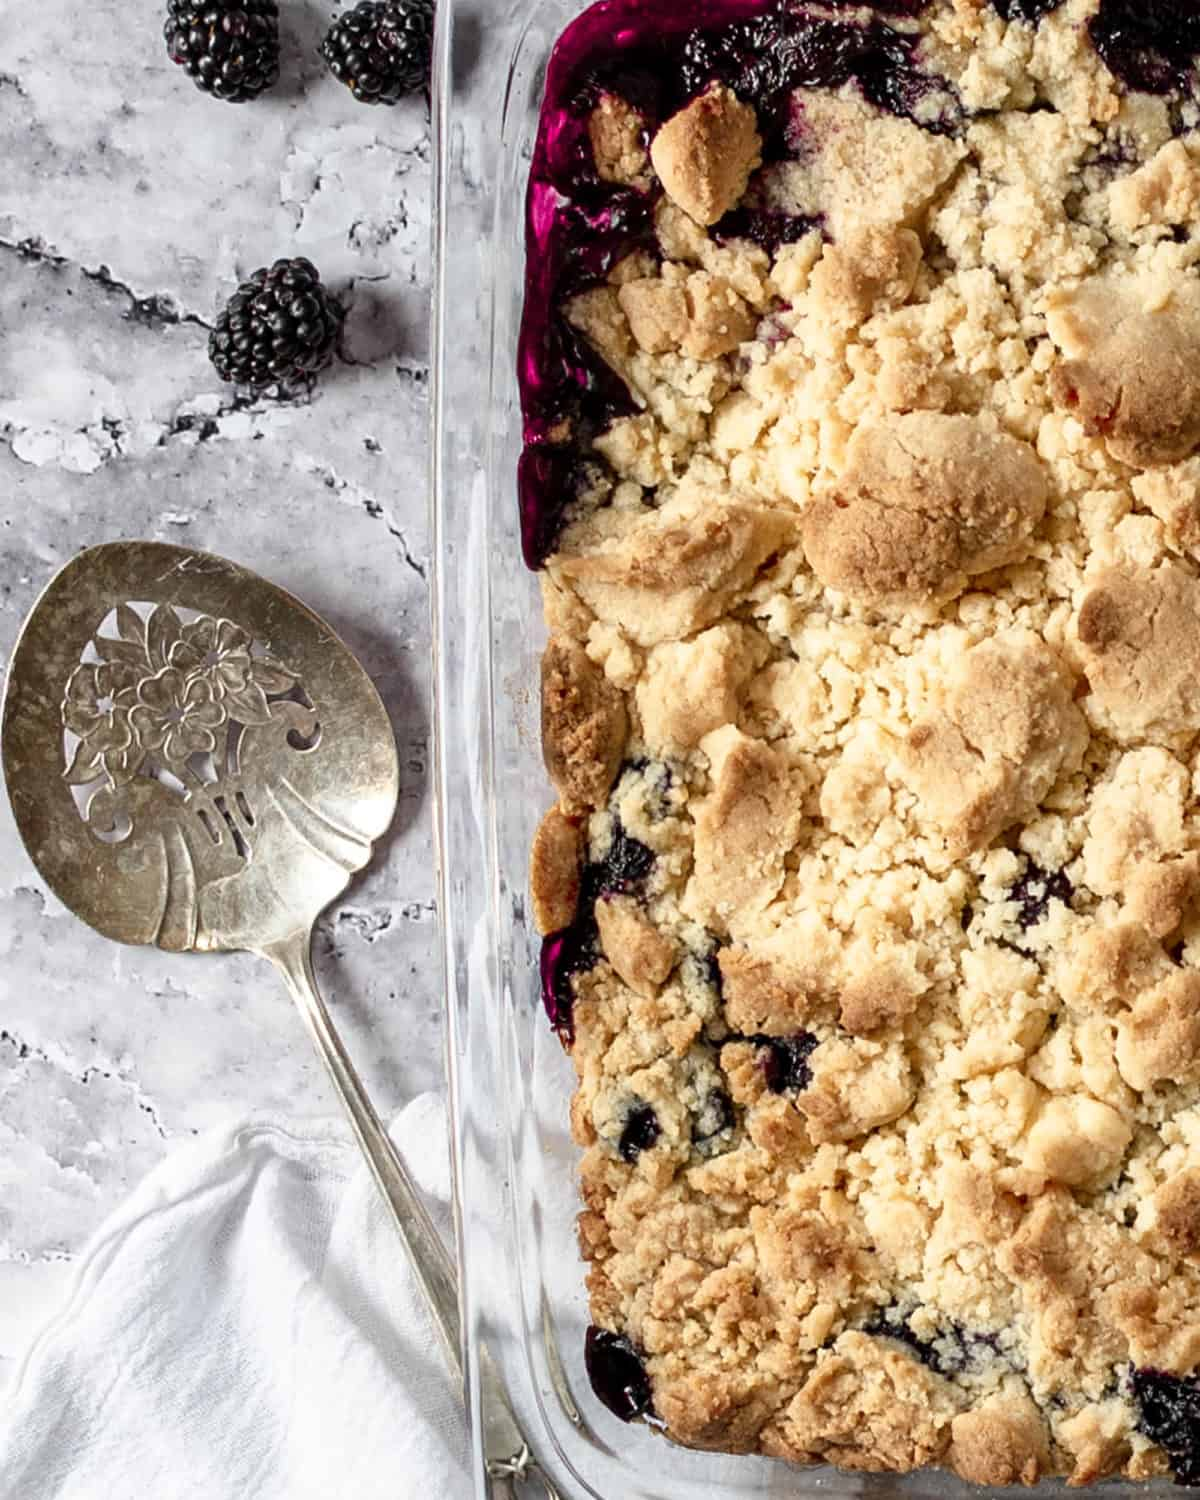 Close up of blackberry cobbler finished in a baking dish.